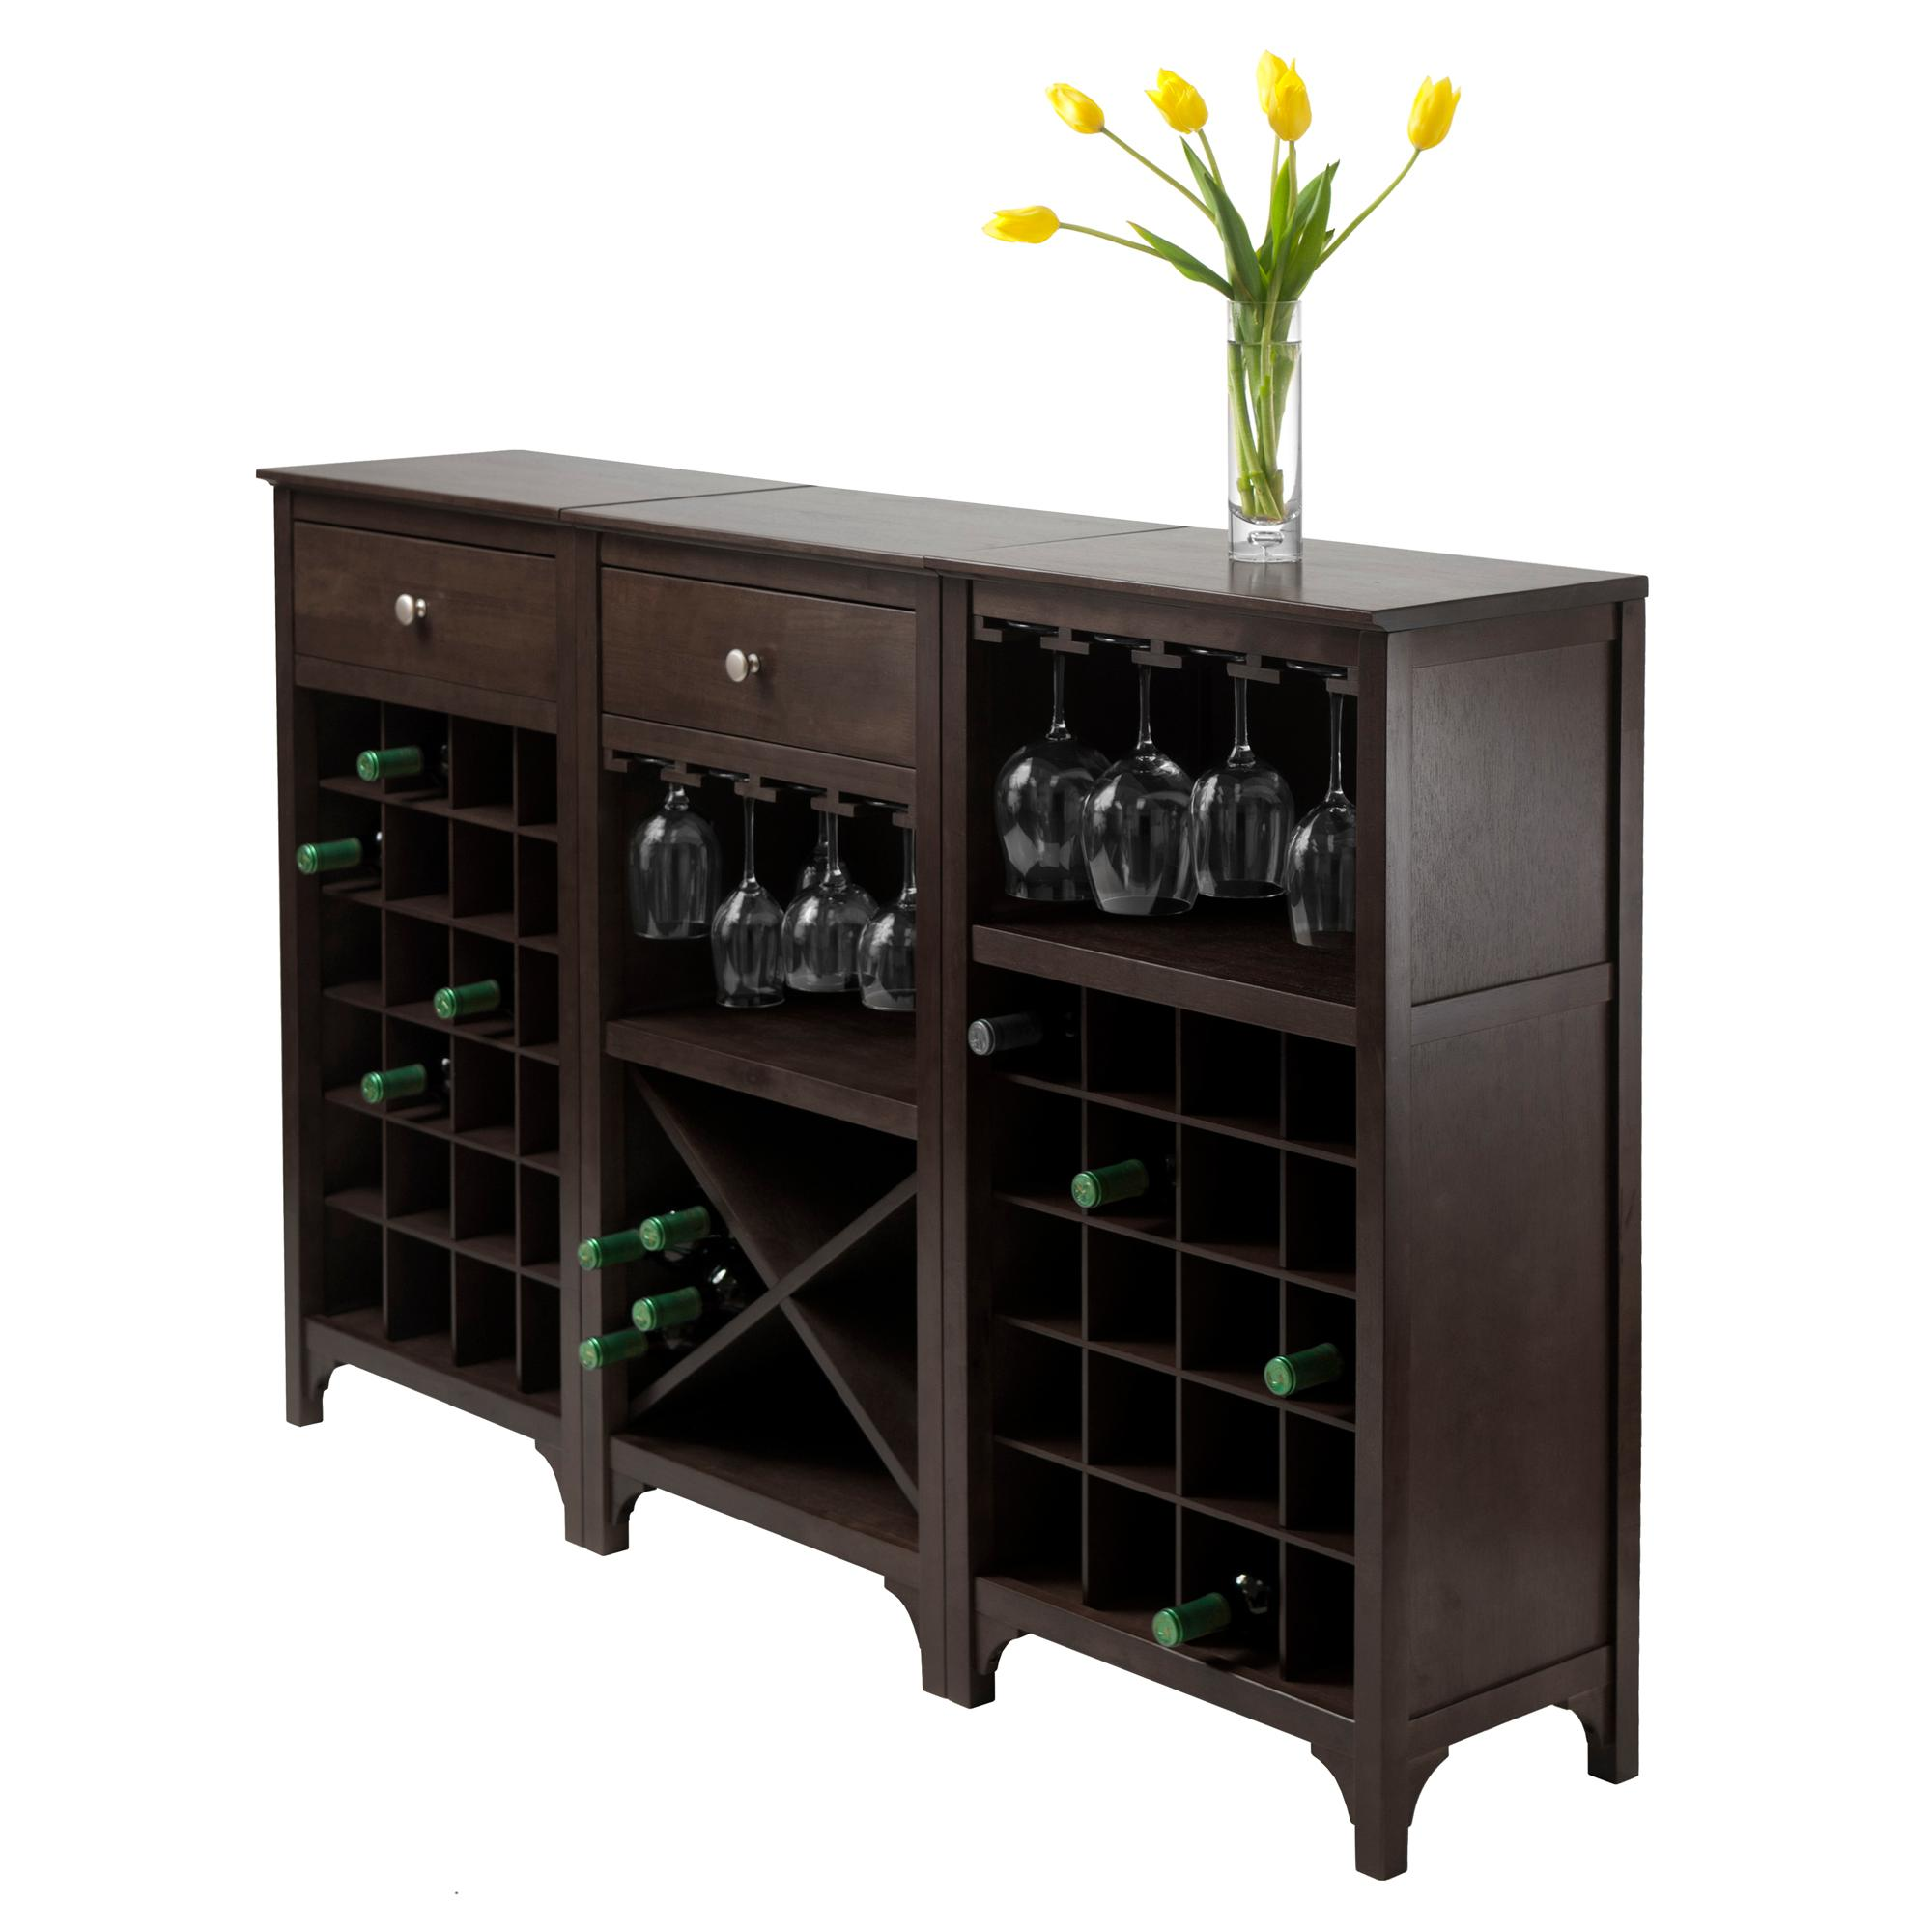 units l whisky room antique living cabinets pics amusing glamorous terrific cases cabinet fabulous with glass wine india ireland display corner wooden for picture ikea c home